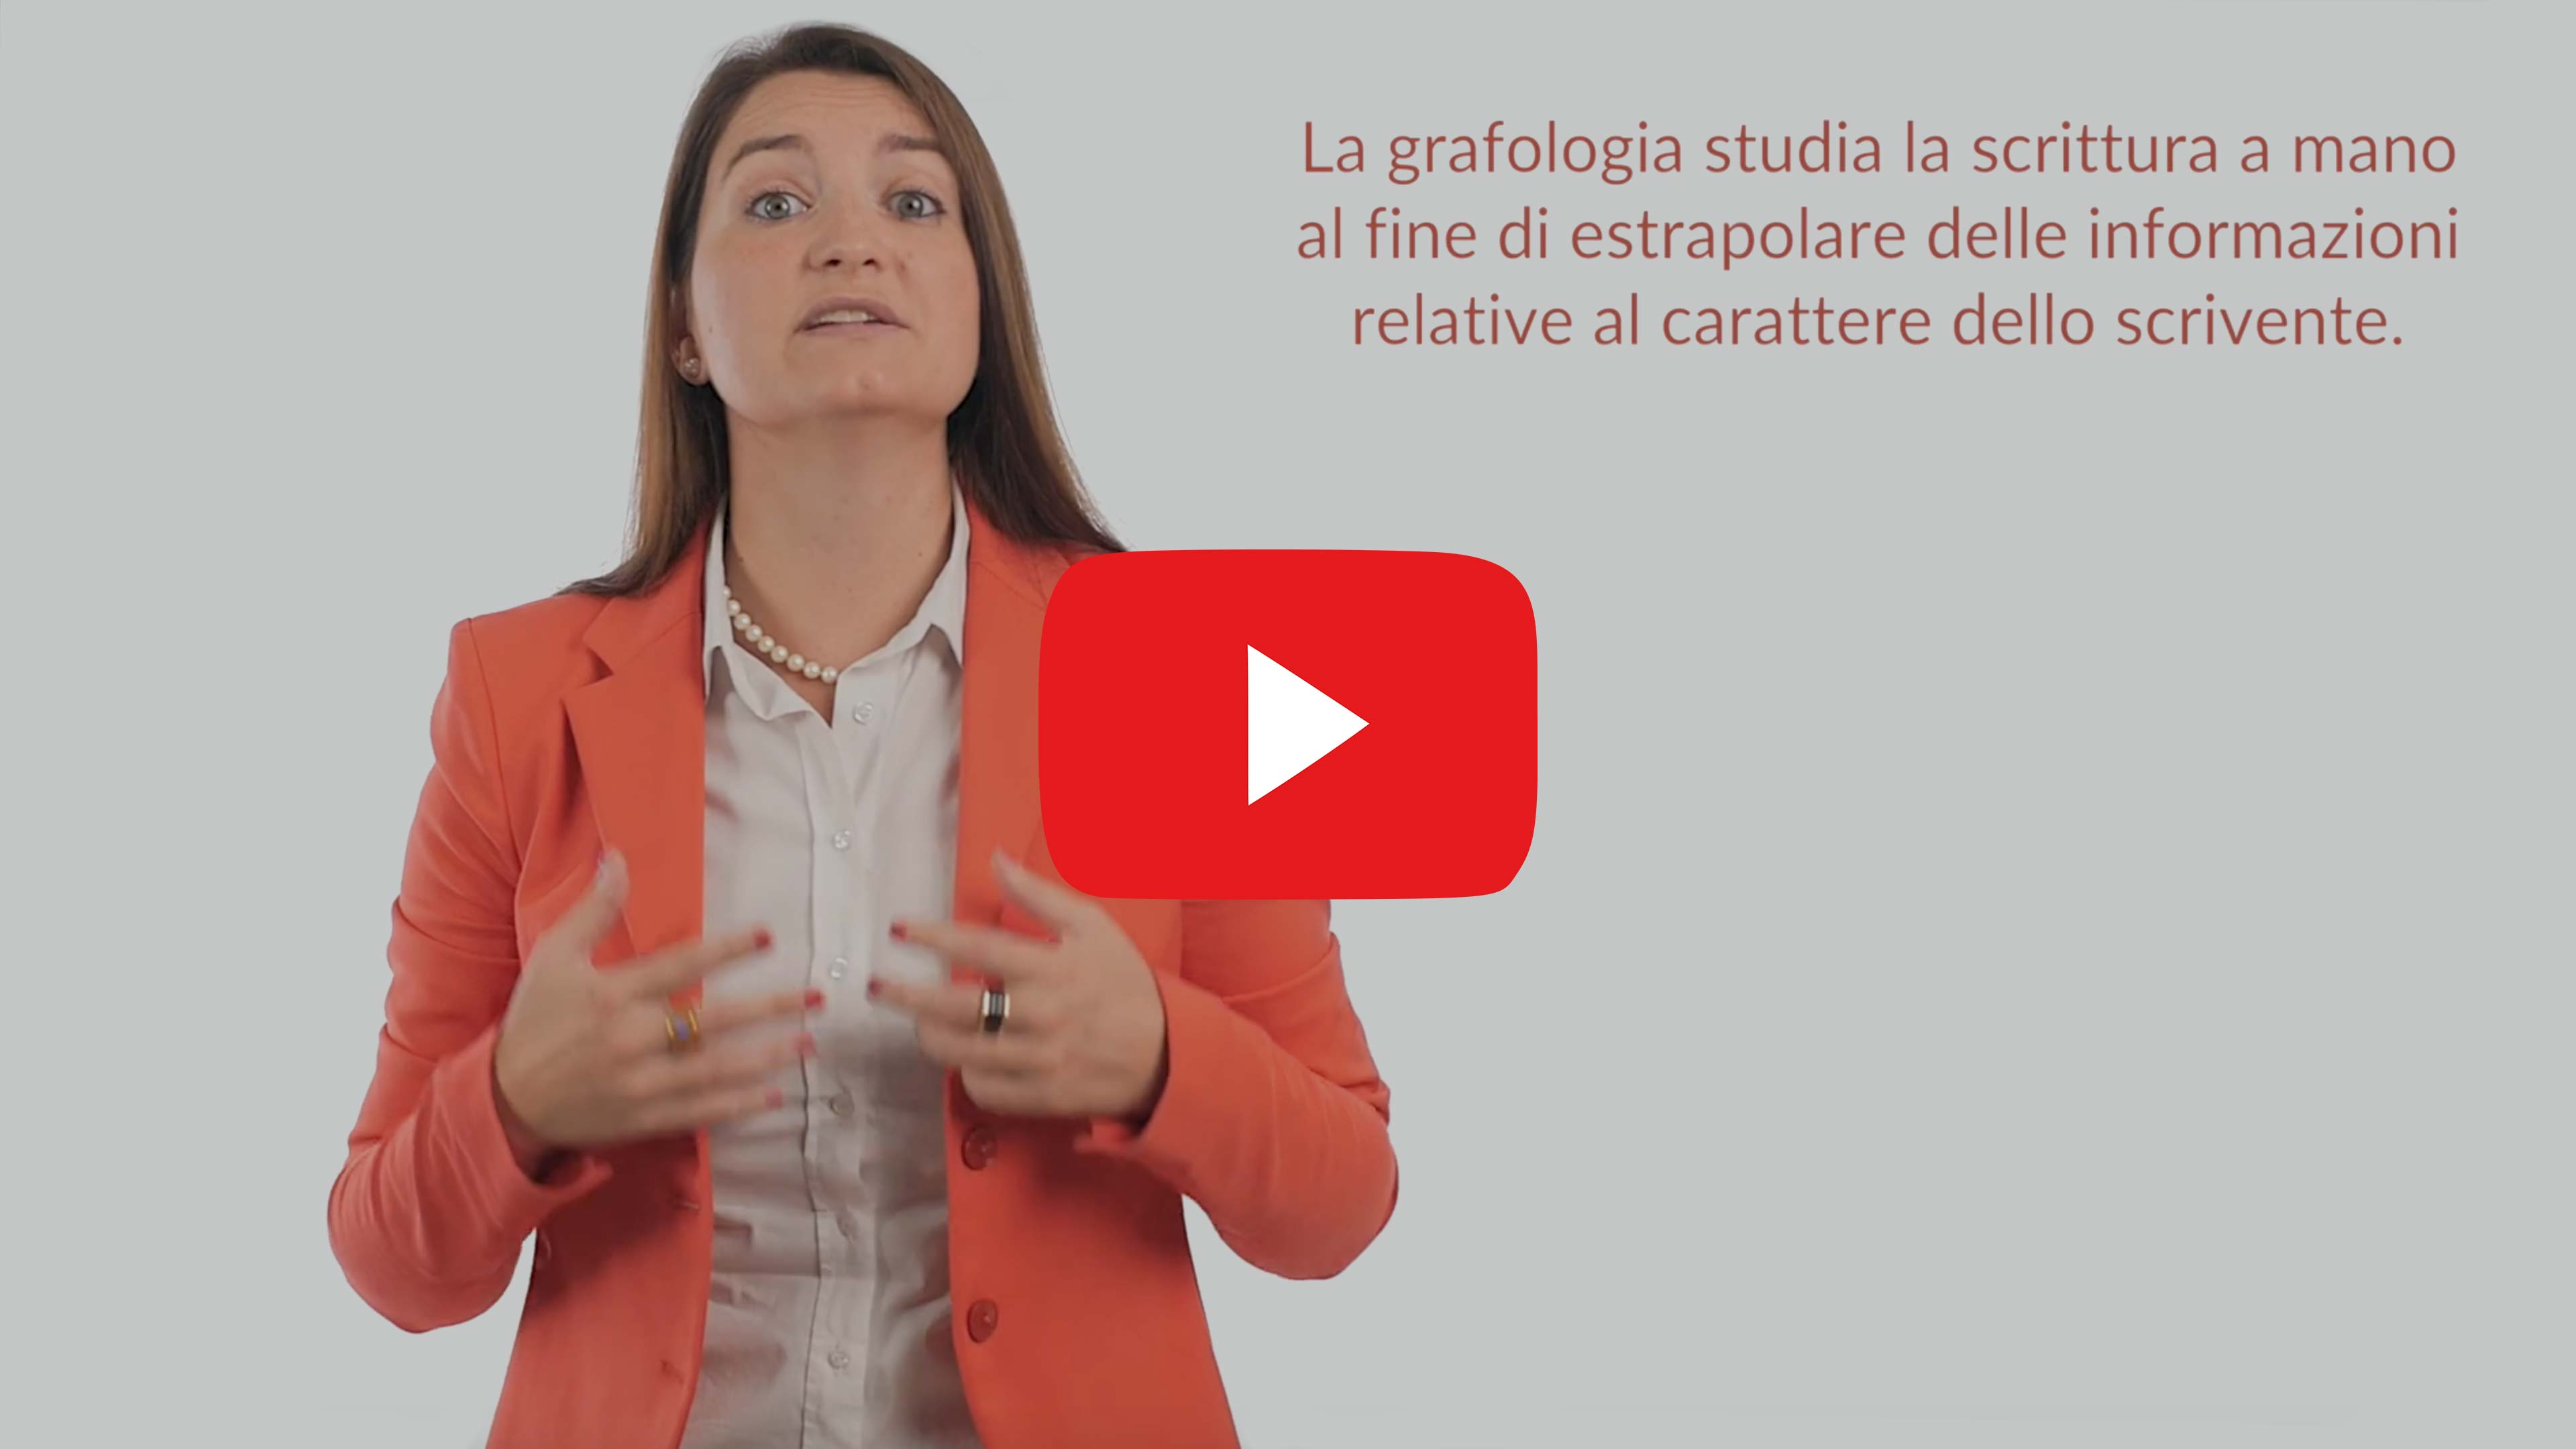 Le credenze da sfatare sulla grafologia, video Youtube Grafologia360